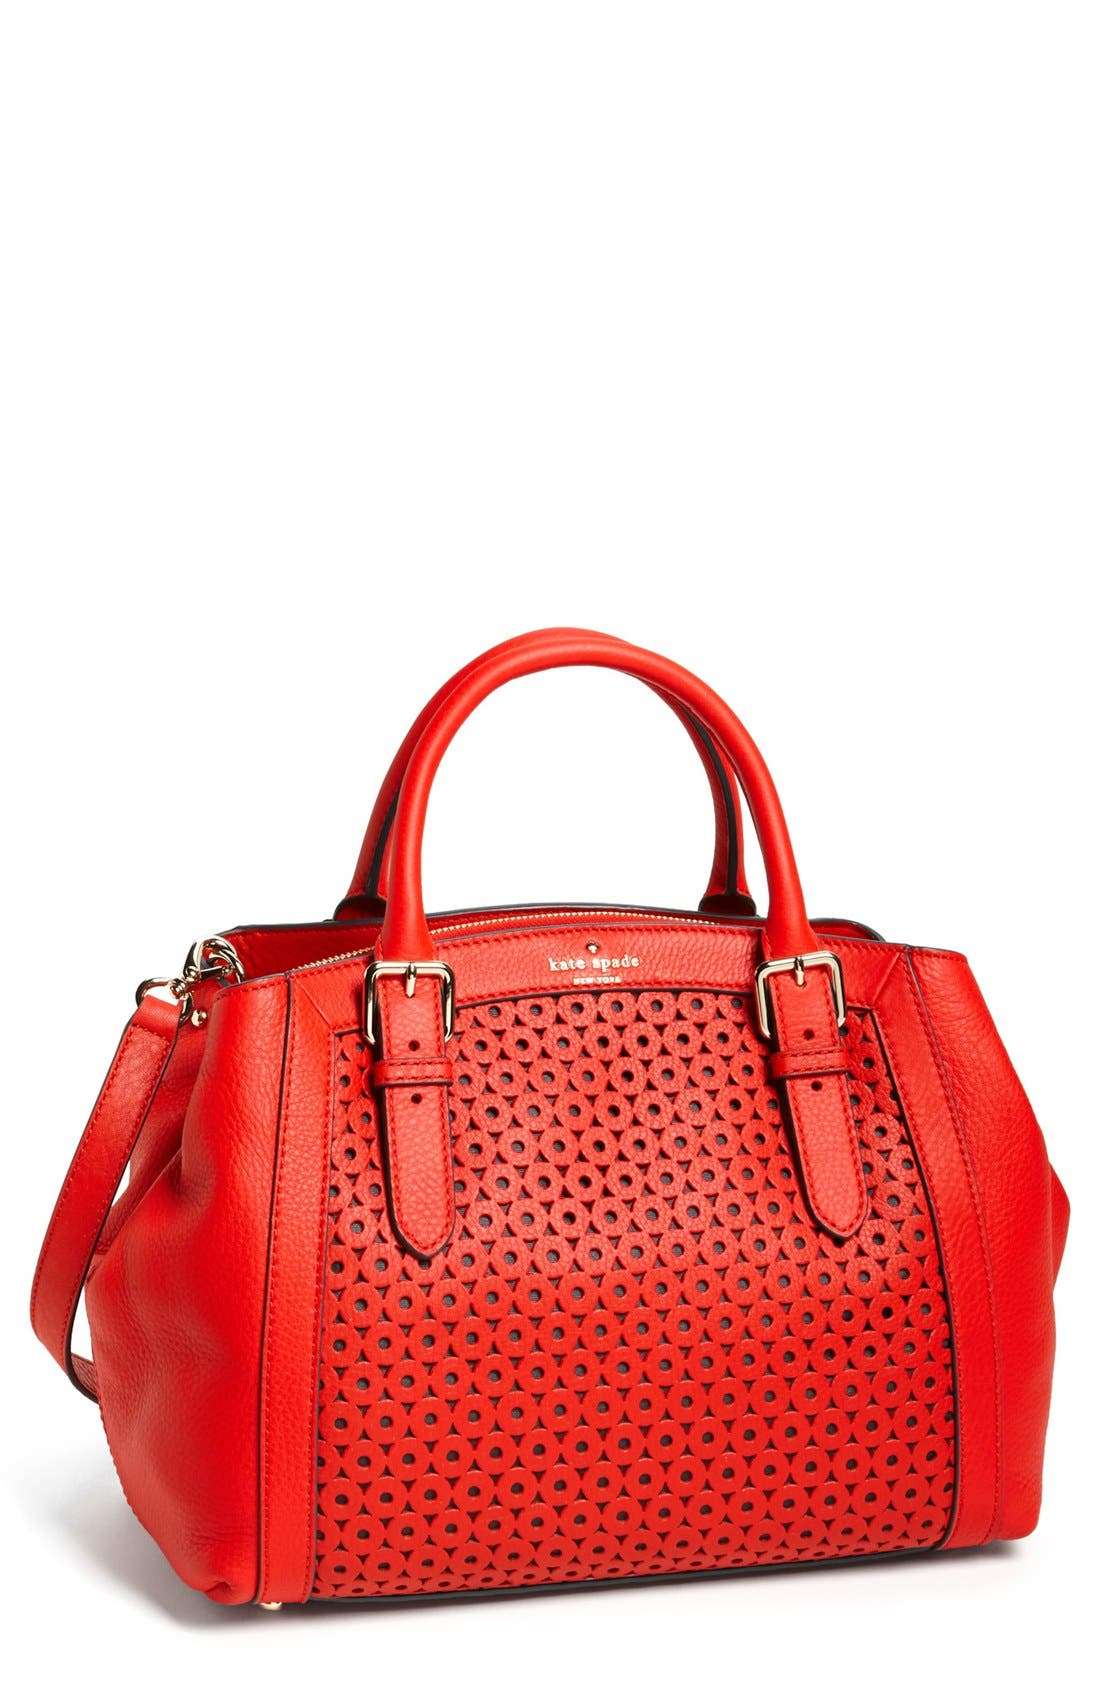 Main Image - kate spade new york 'mercer isle - sloan' satchel